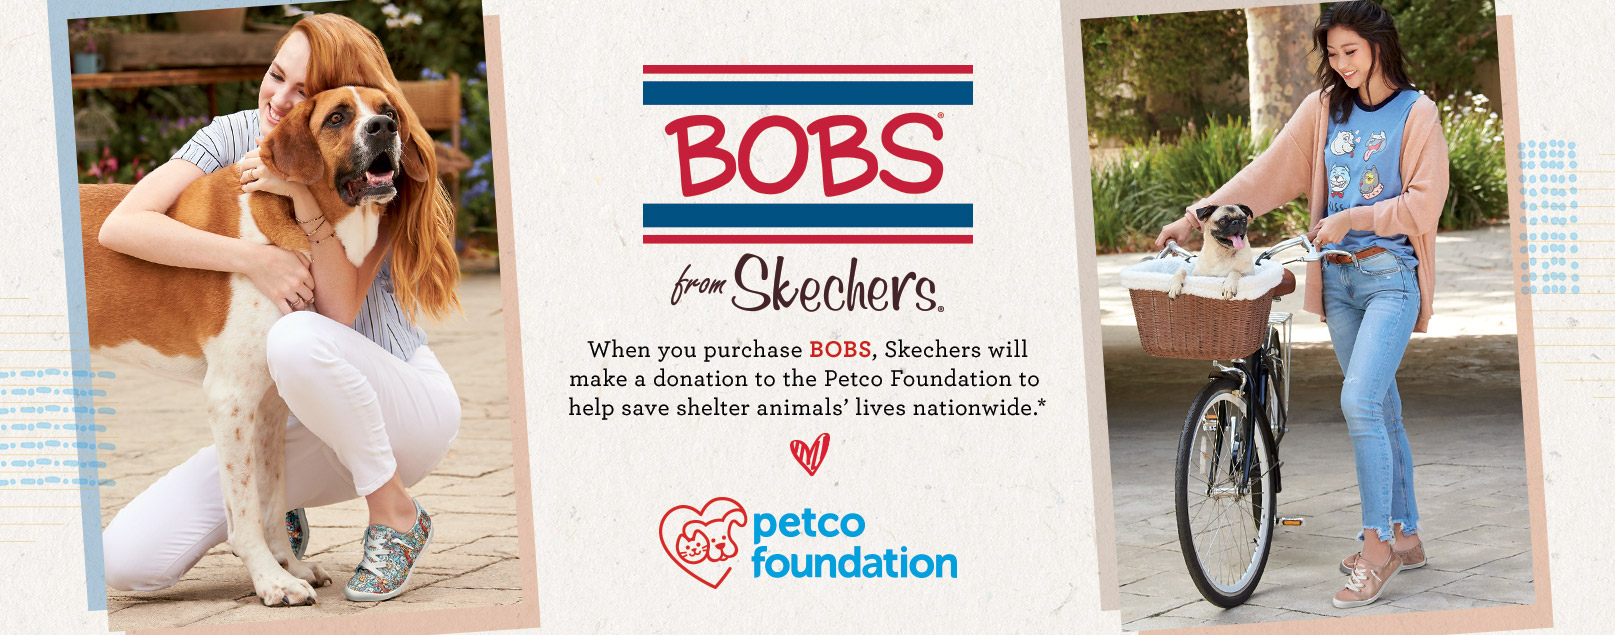 When you purchase BOBS, Skechers will make a donation to the Petco Foundation to help save shelter animals' lives nationwide.*